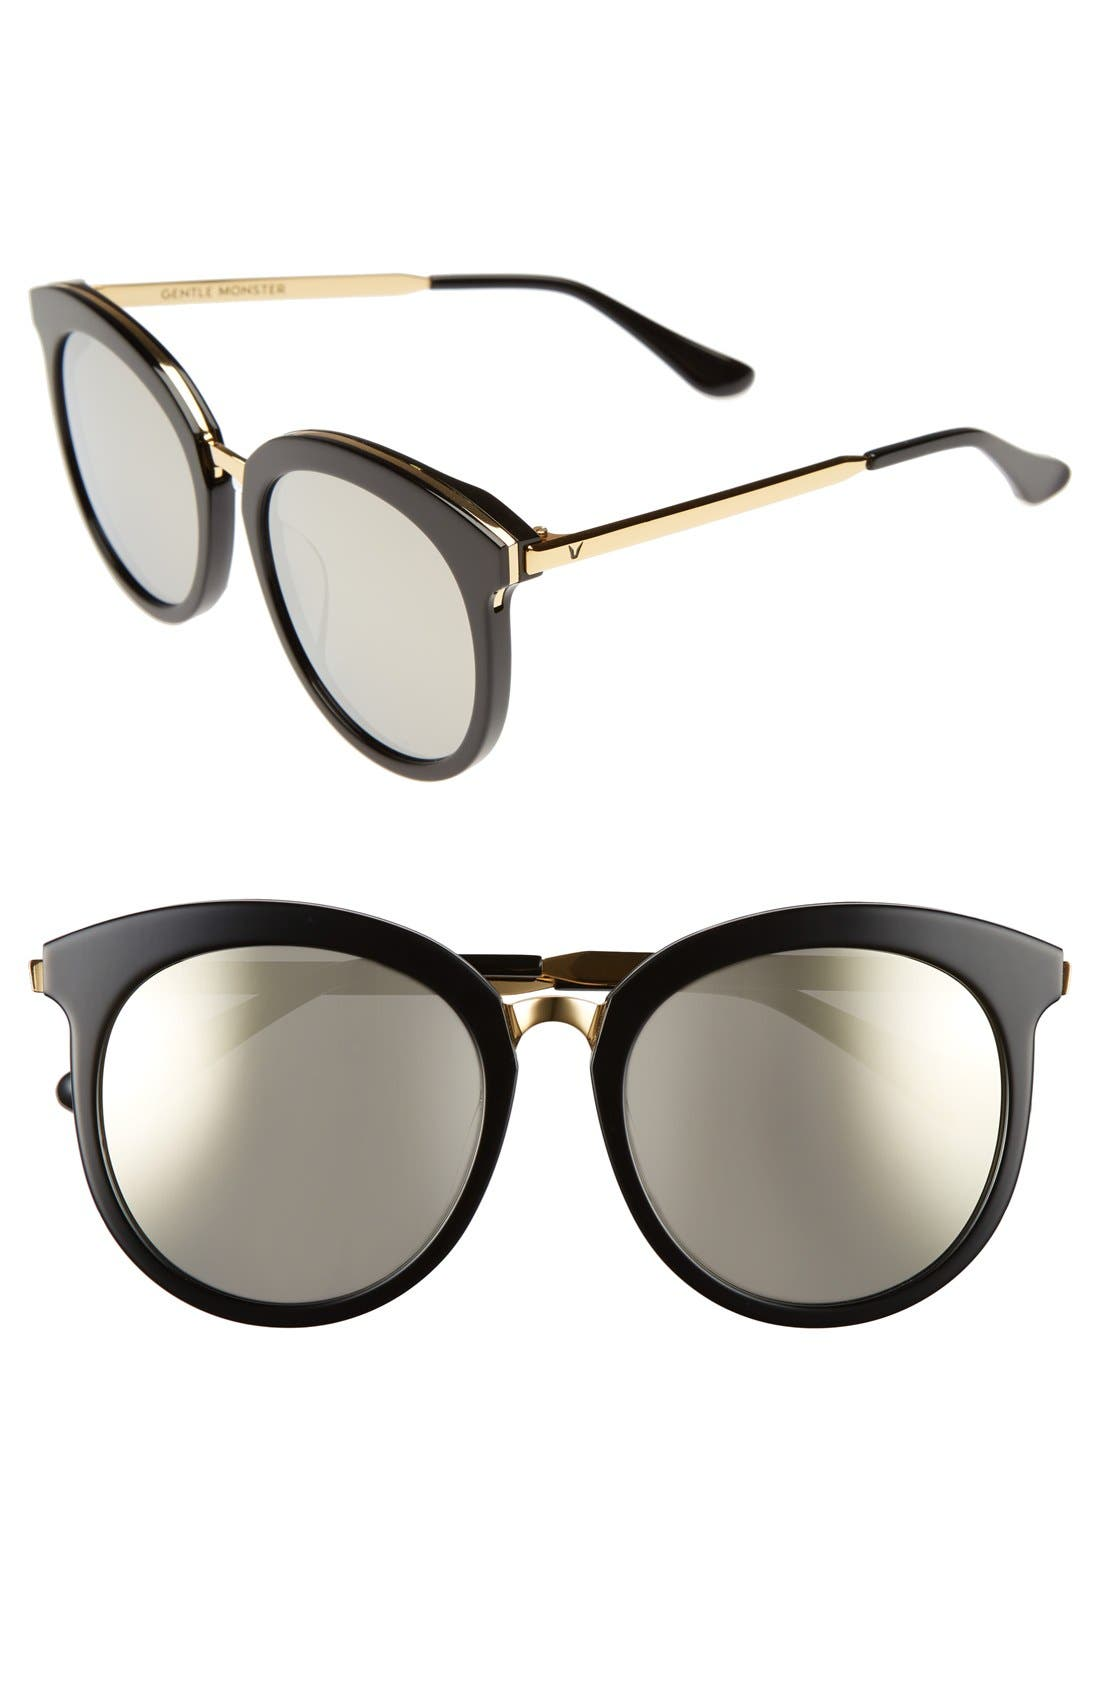 56mm Round Sunglasses,                         Main,                         color, Black/ Gold